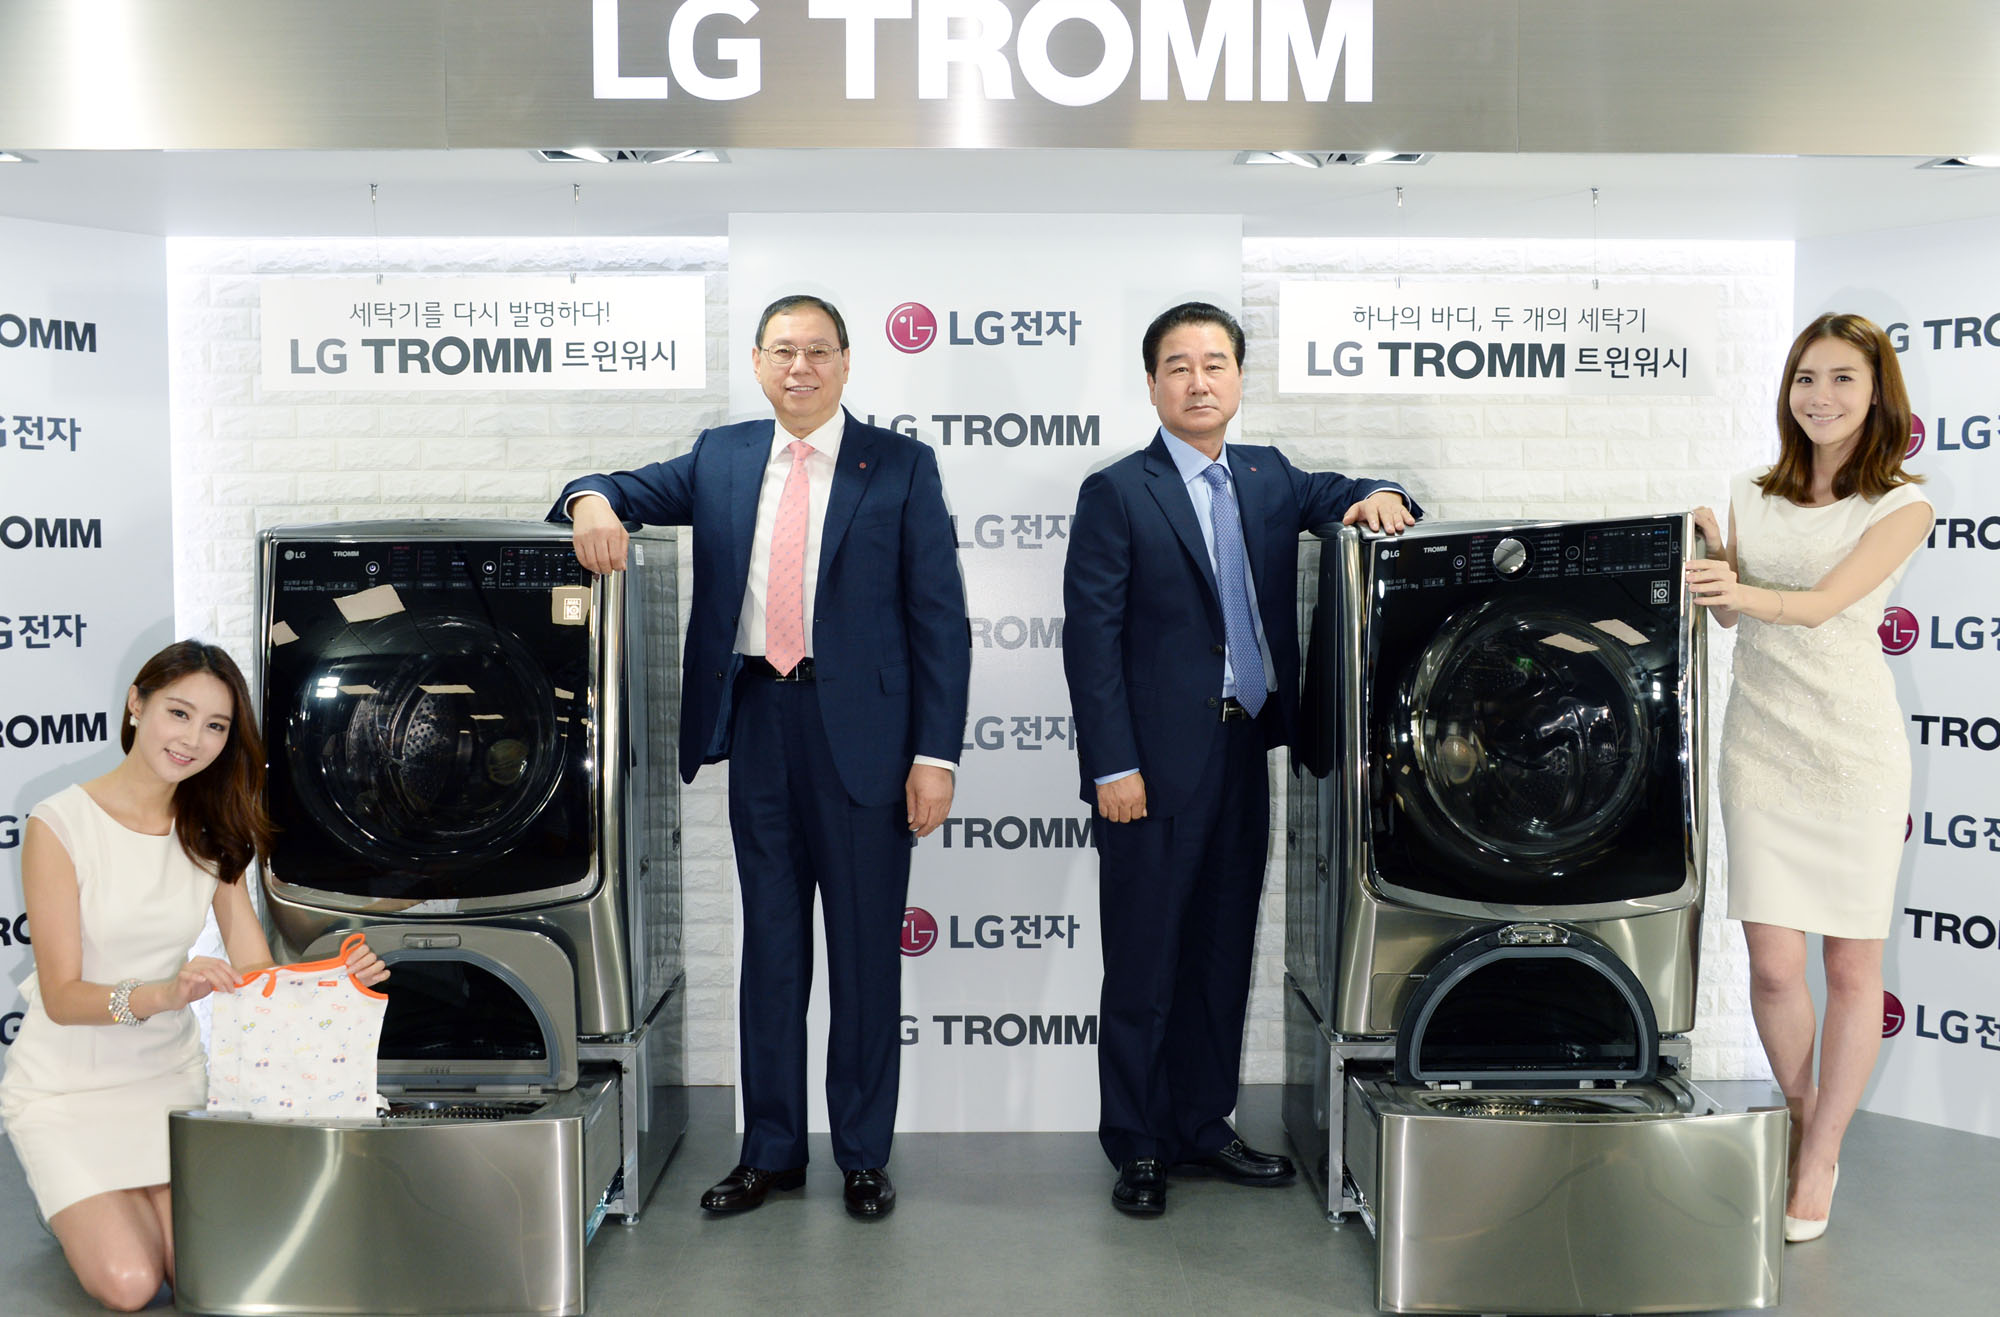 Jo Seong-jin (2nd from left), president and CEO of LG's Home Appliance division, poses with models and the new LG Twin Wash System at the company's headquarters in Yeouido, Seoul, on July 23.